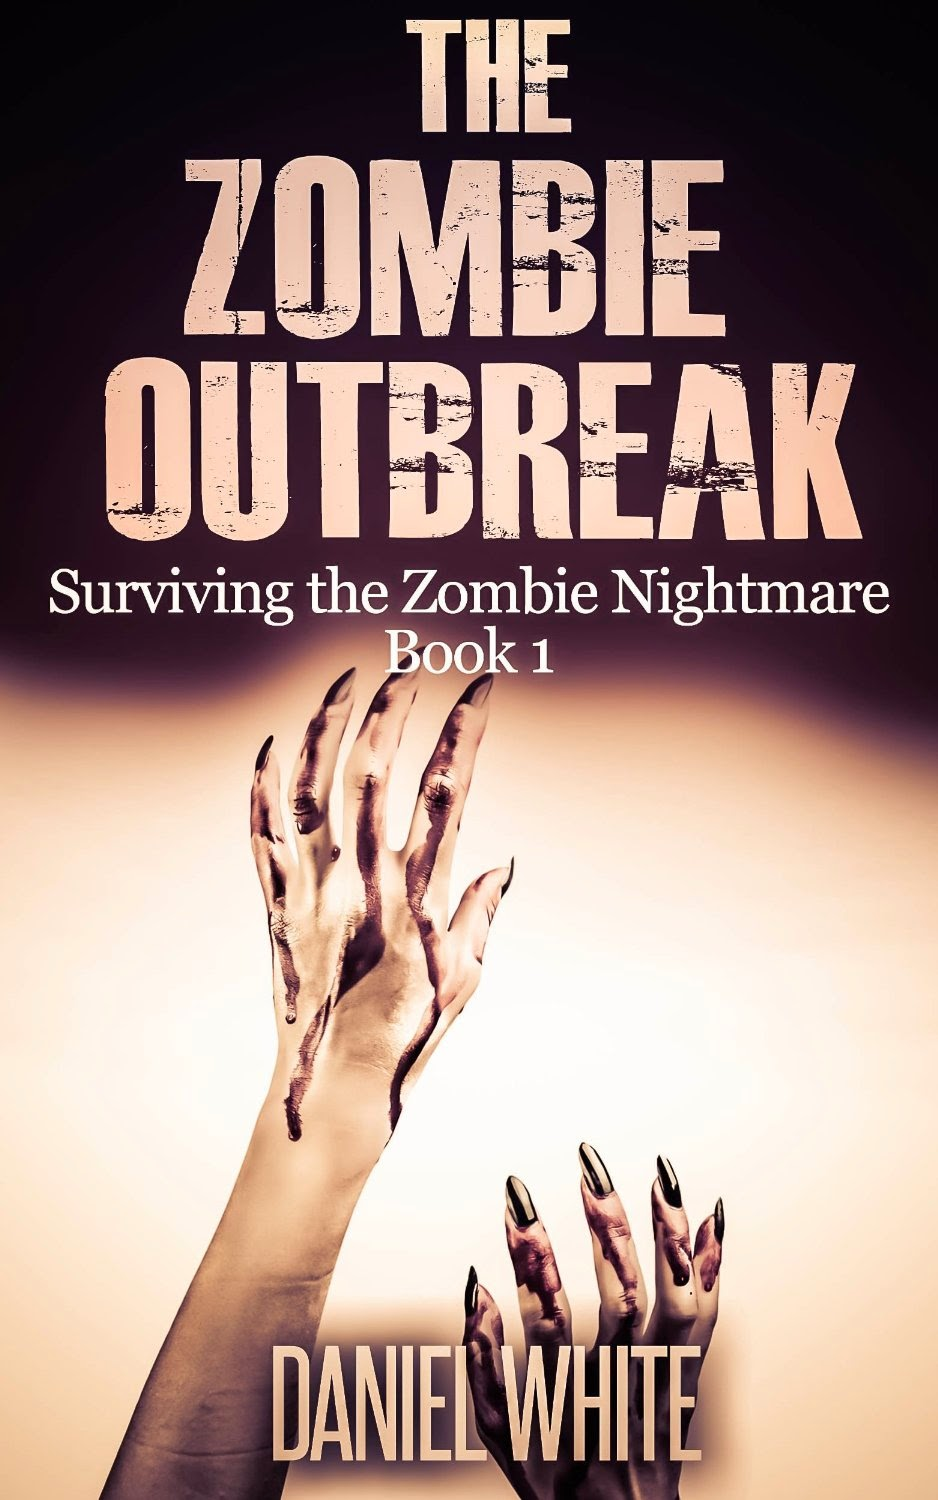 http://www.amazon.com/Zombie-Outbreak-Surviving-Nightmare-Book-ebook/dp/B008RA8M32/?tag=juleromans-20